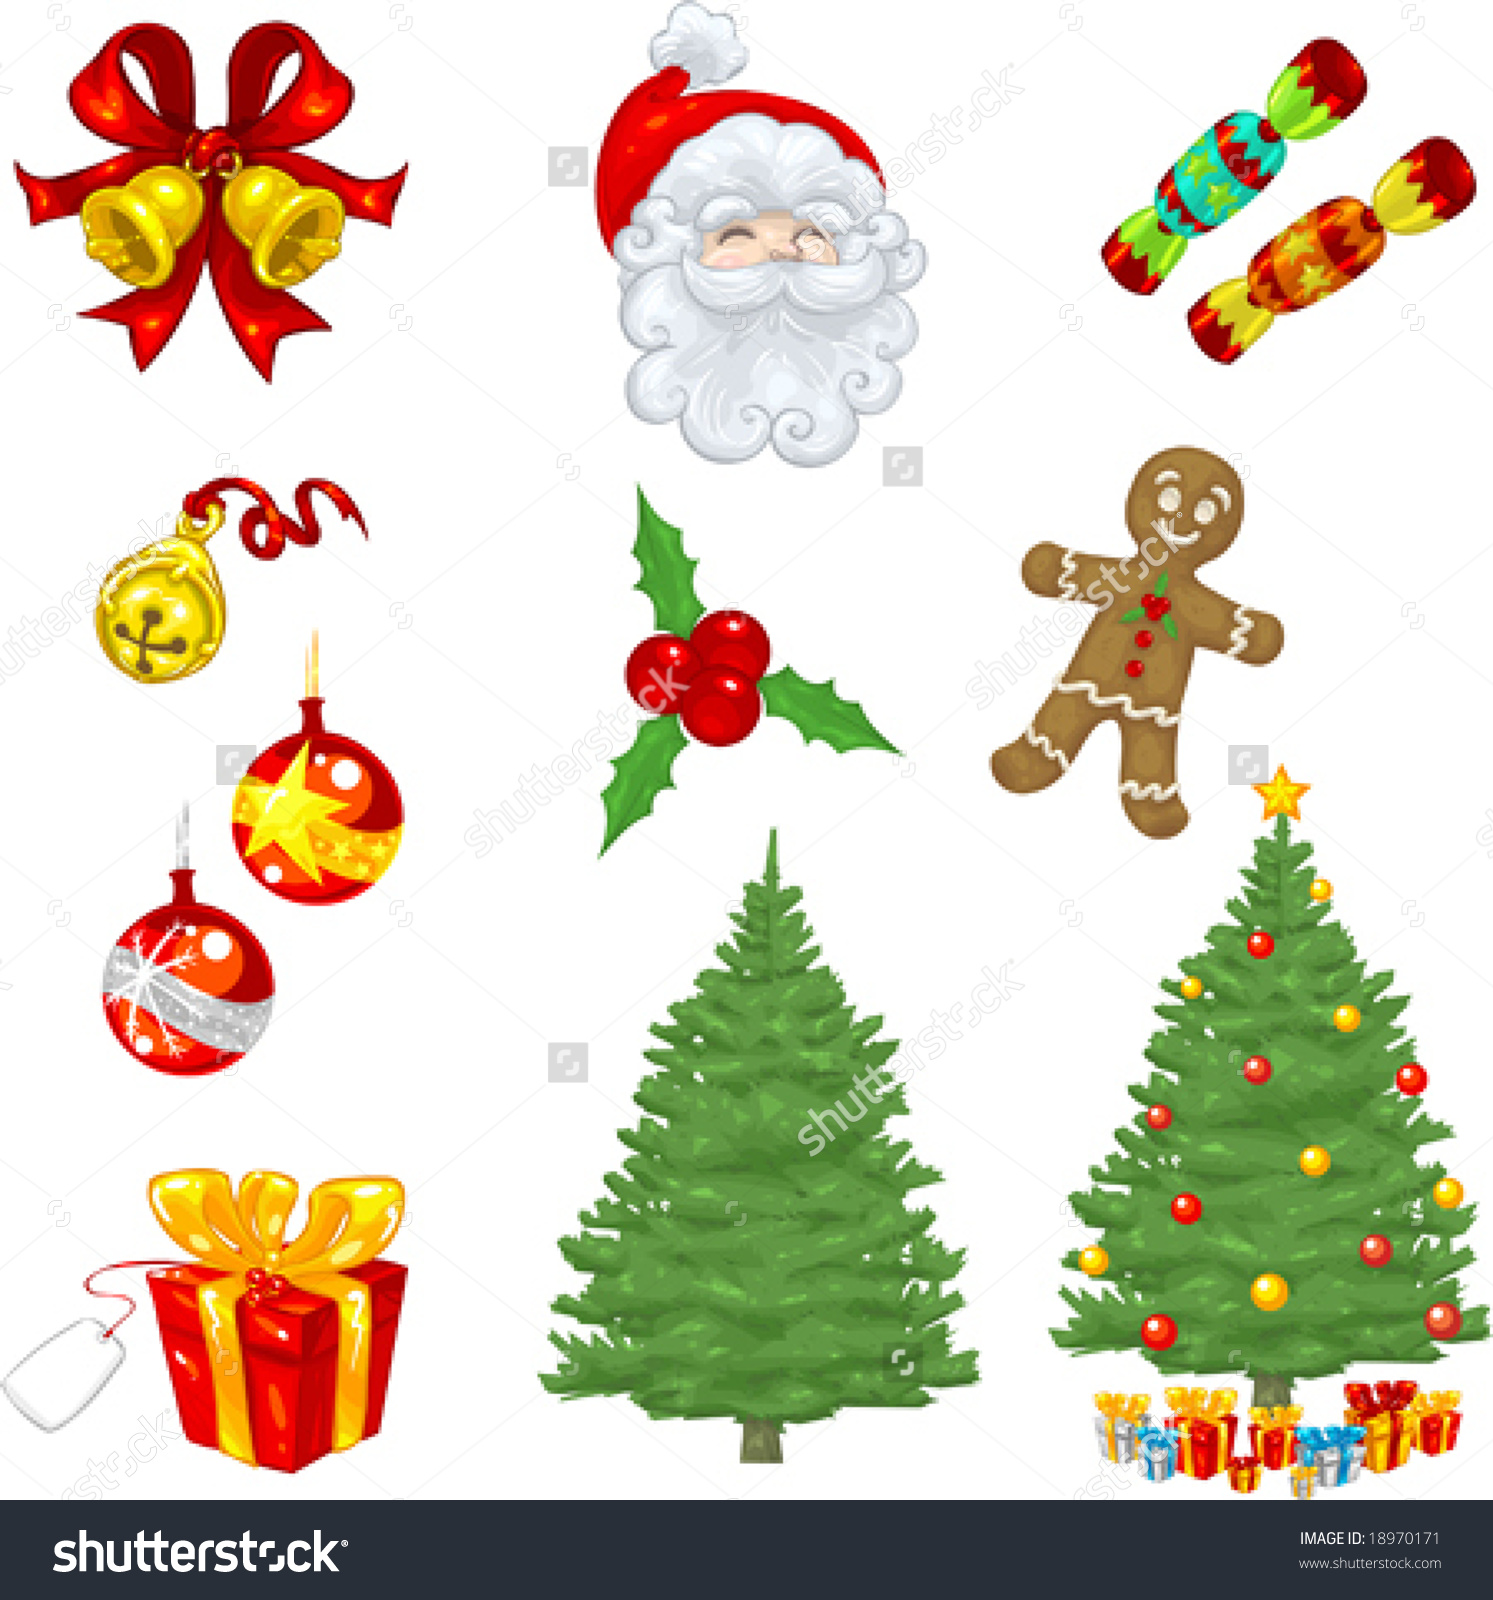 Vector Clip Art Christmas Icons Including Bells, Tree, Ornaments.